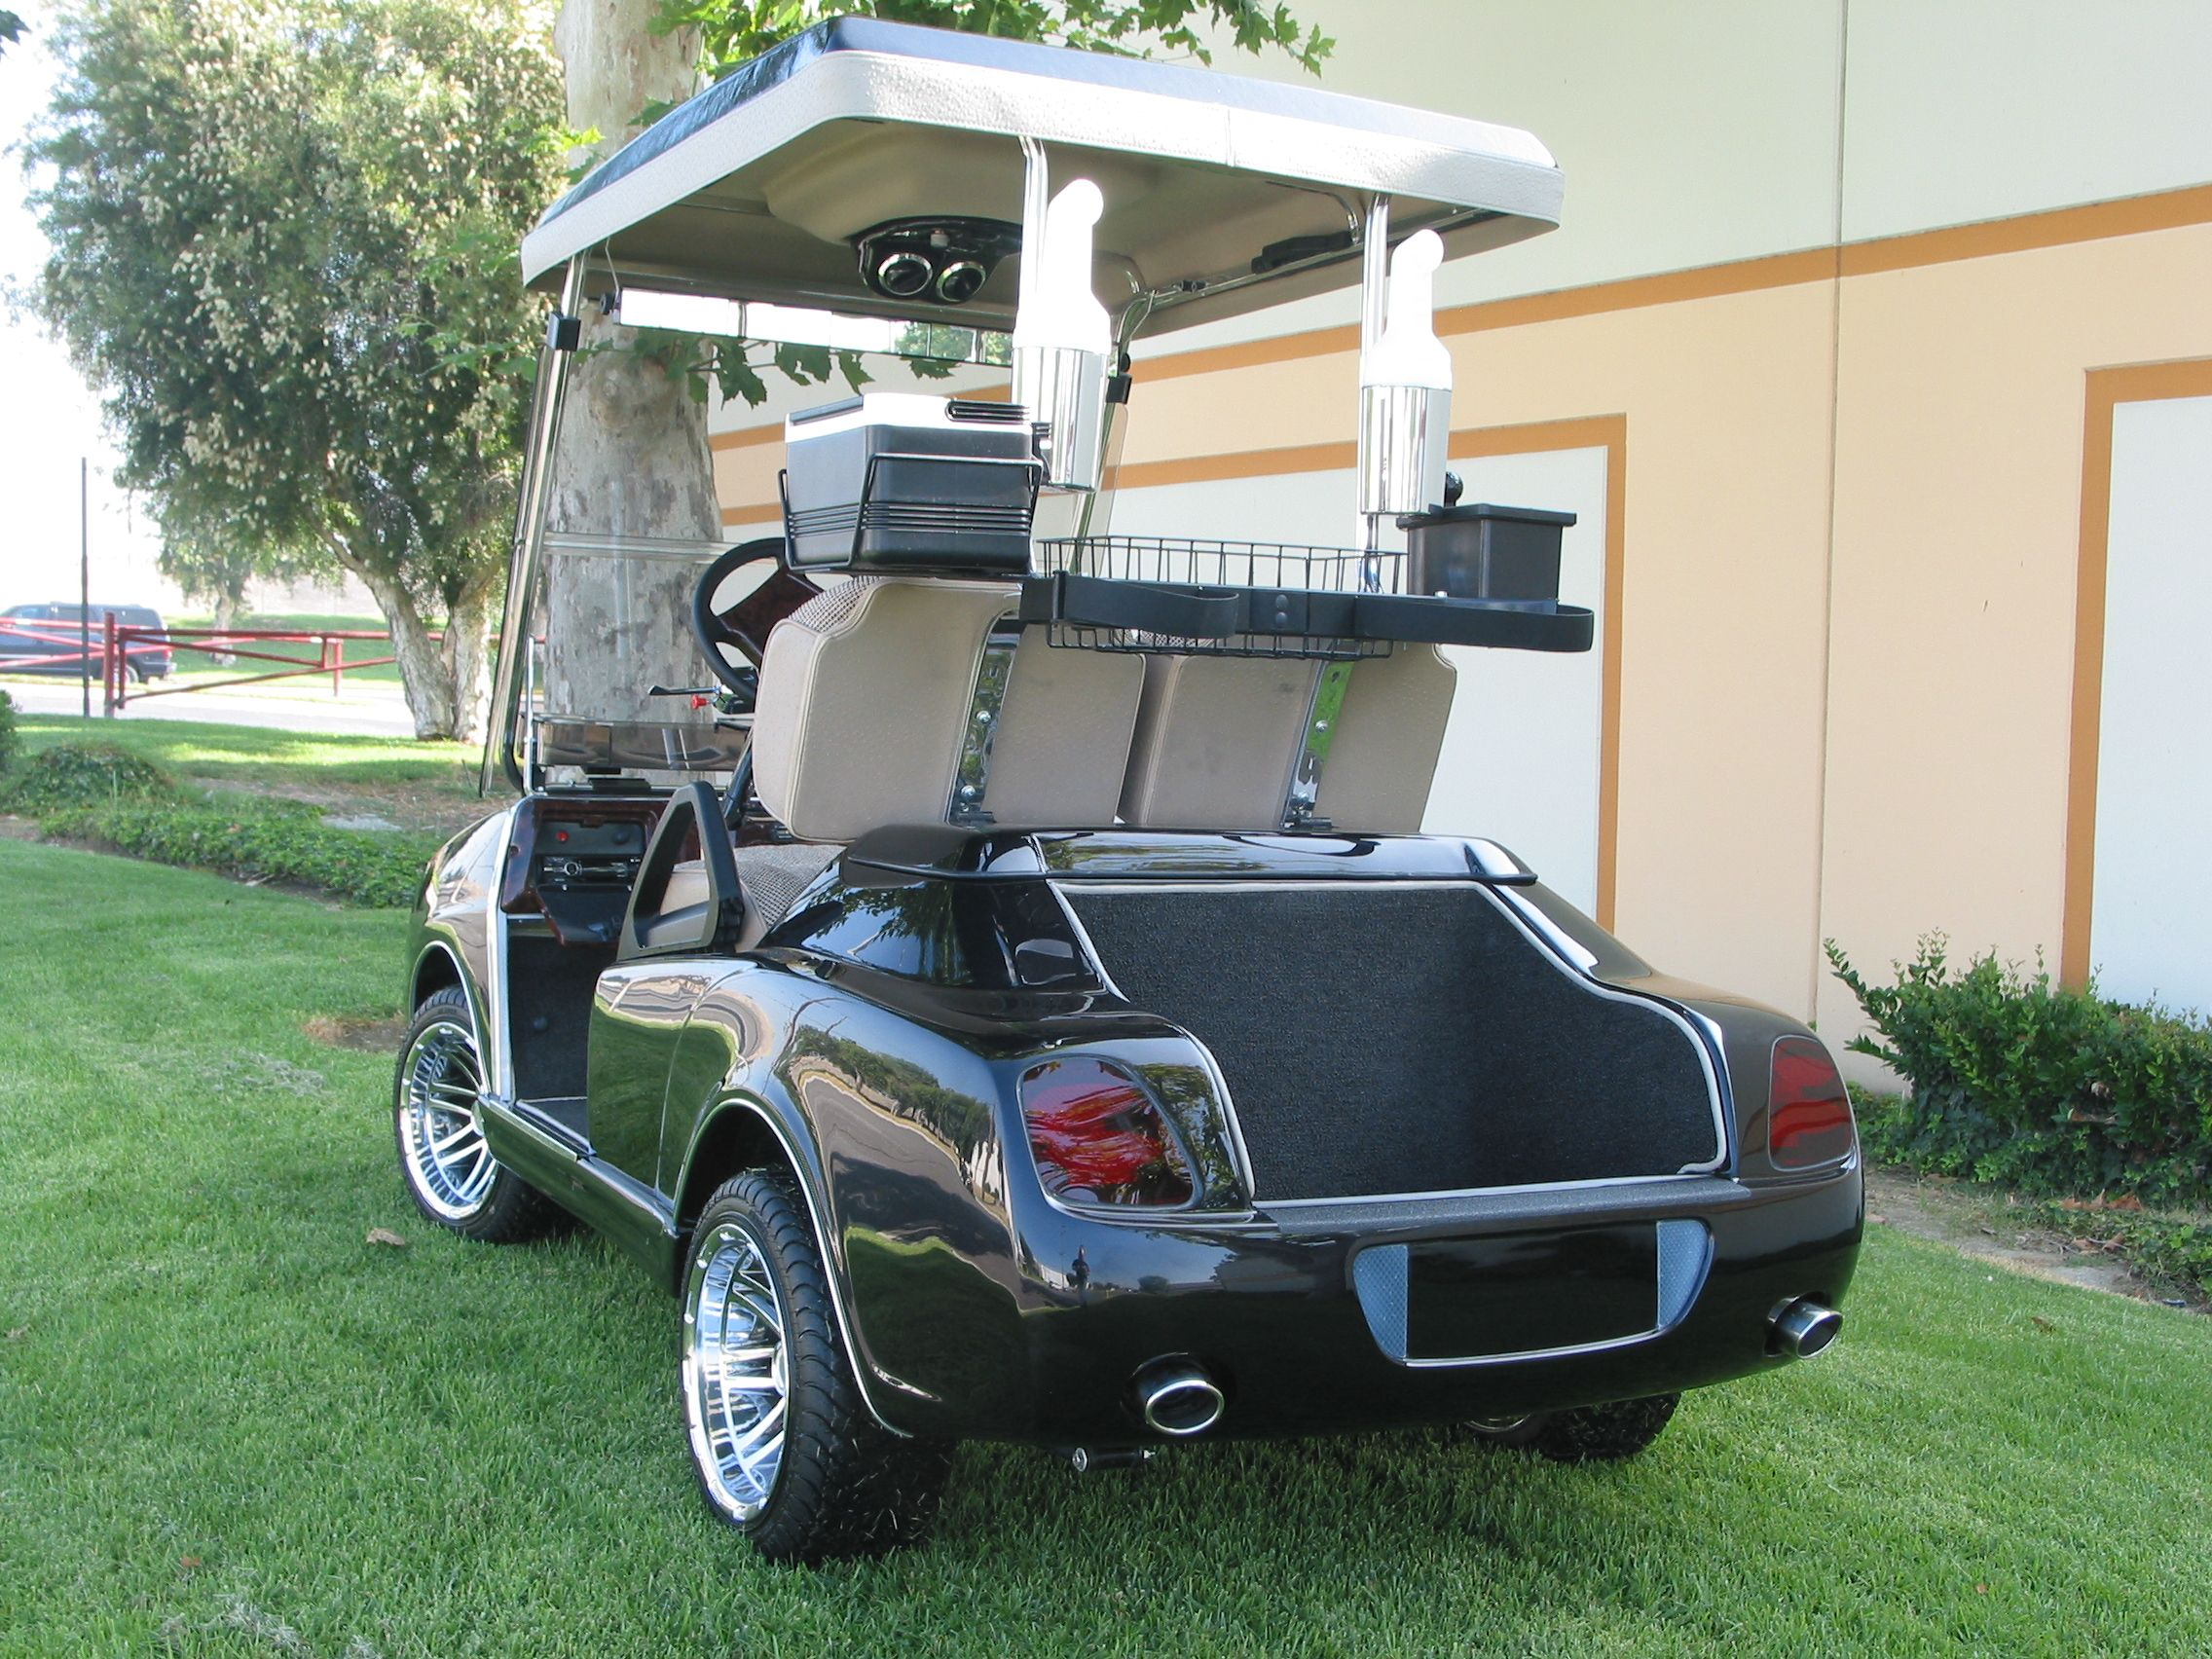 bentley front body kit with a bentley rear on a club car ds golf car